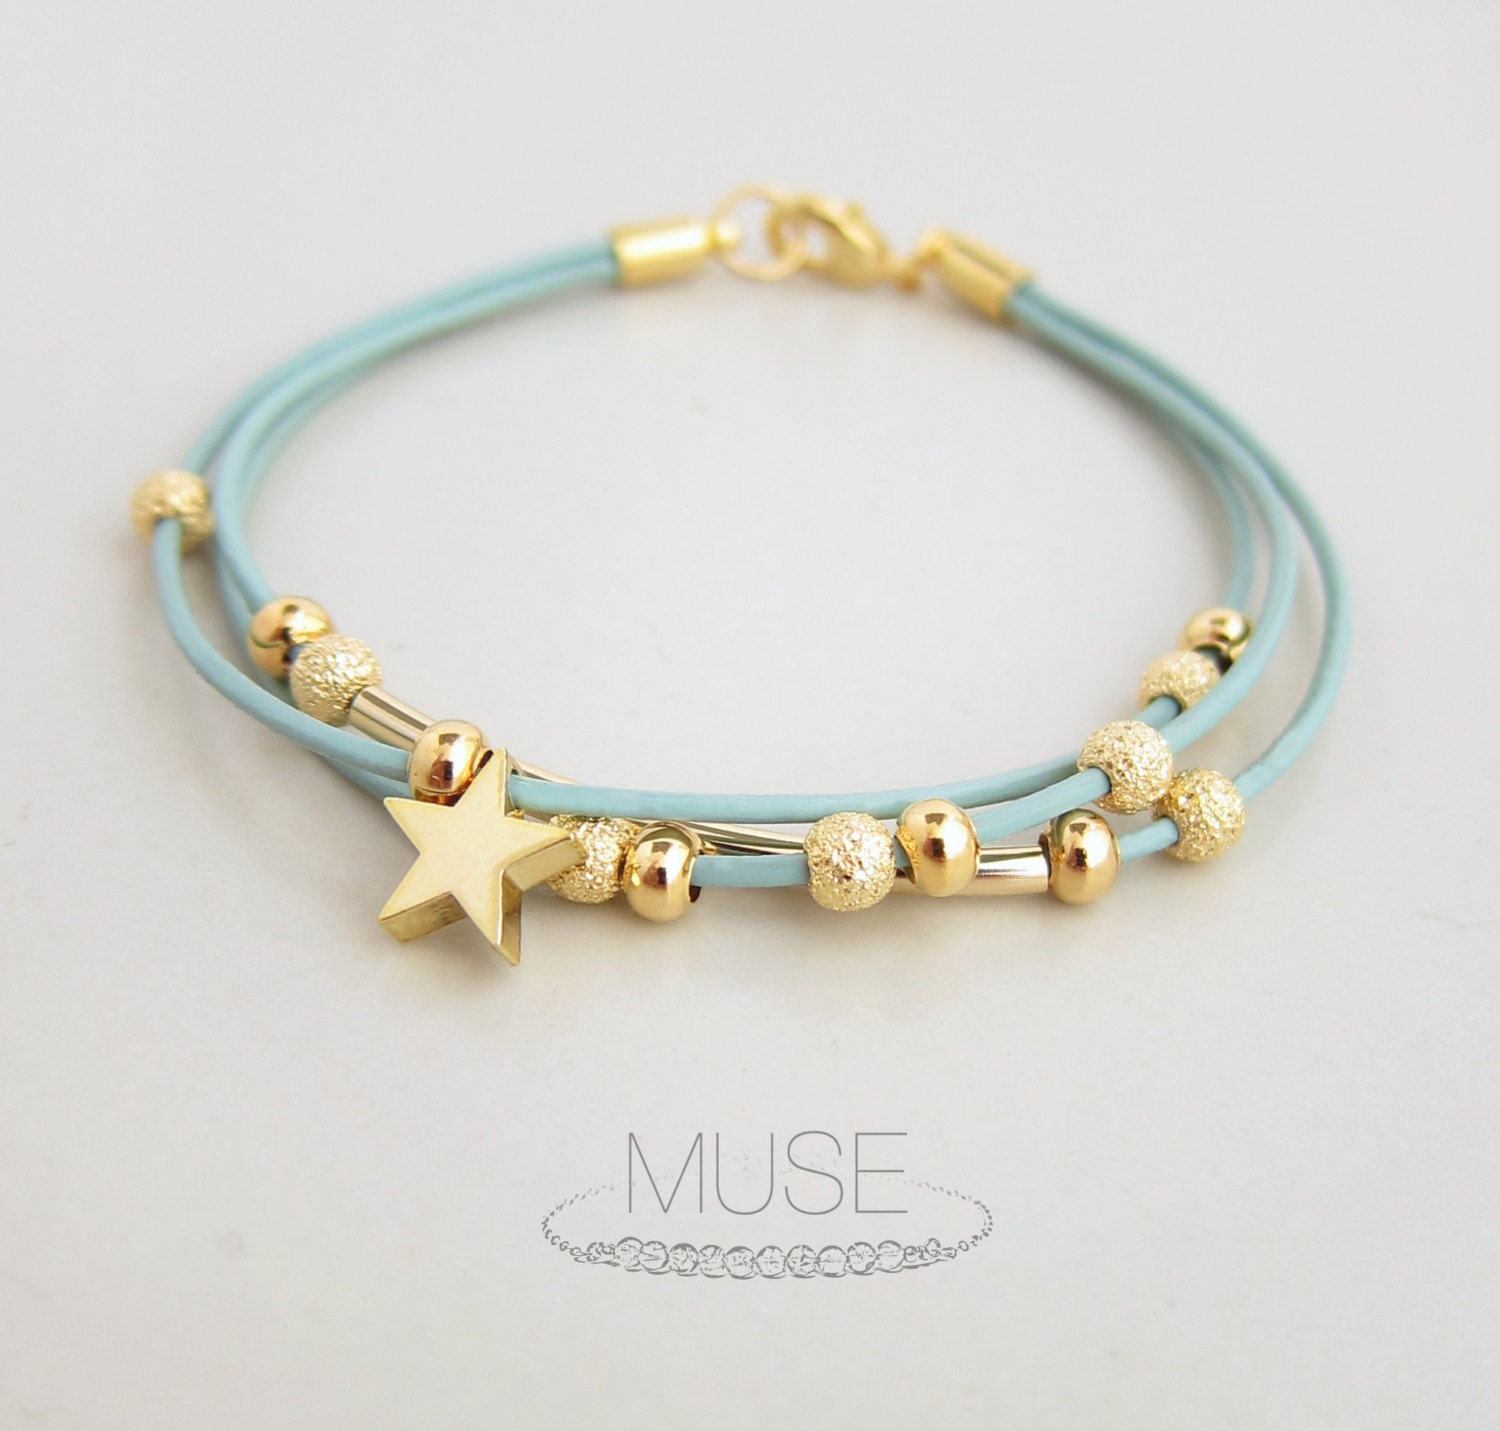 Leather Bracelet With Charms: 301 Moved Permanently